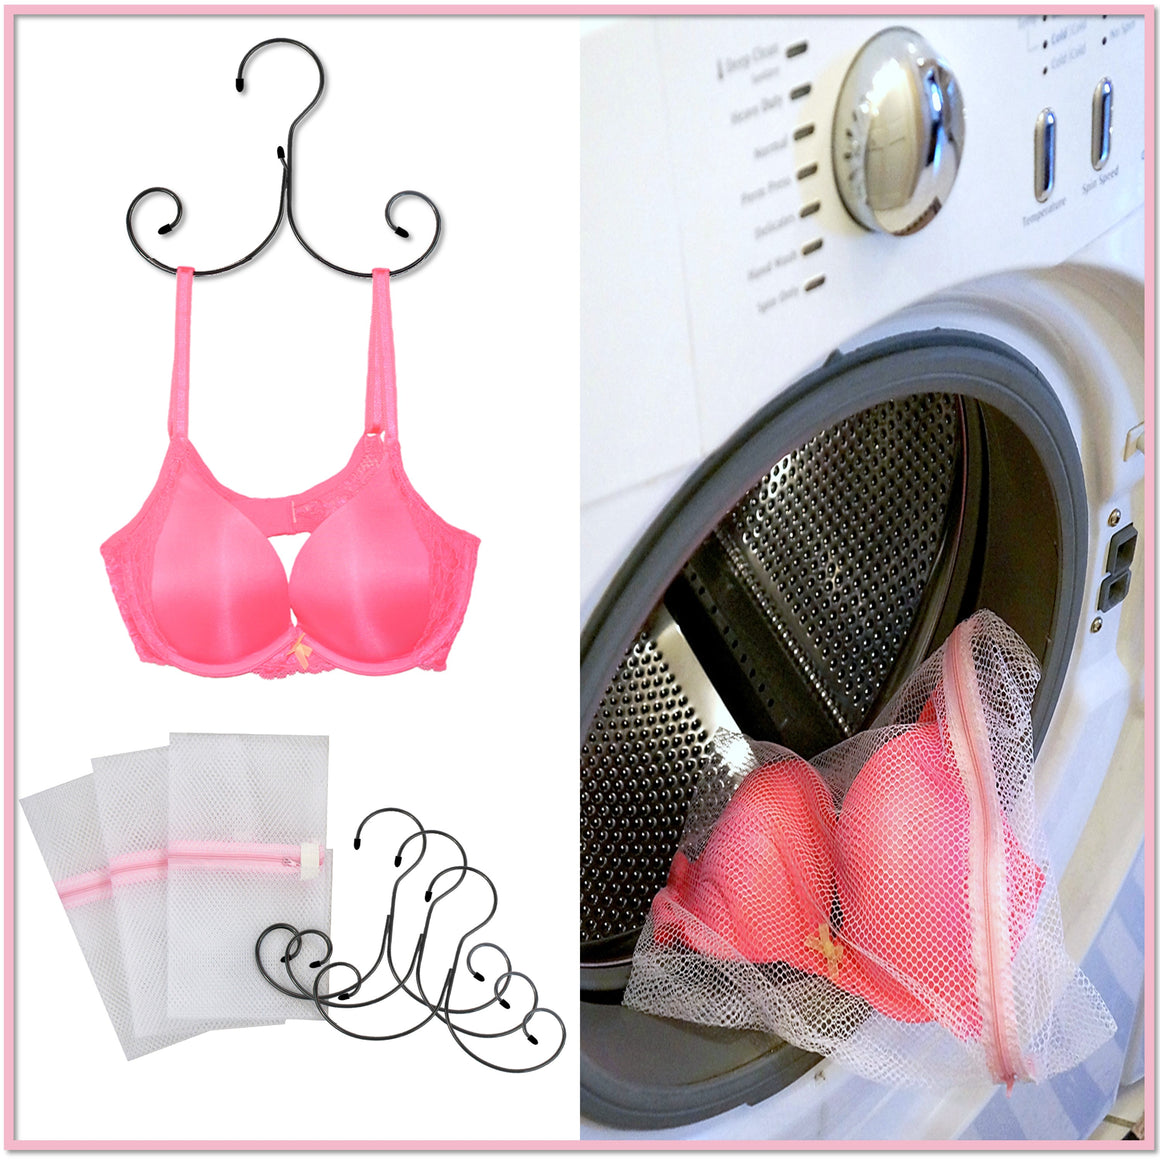 Lingerie Care Kit (6 Pieces) - Boottique